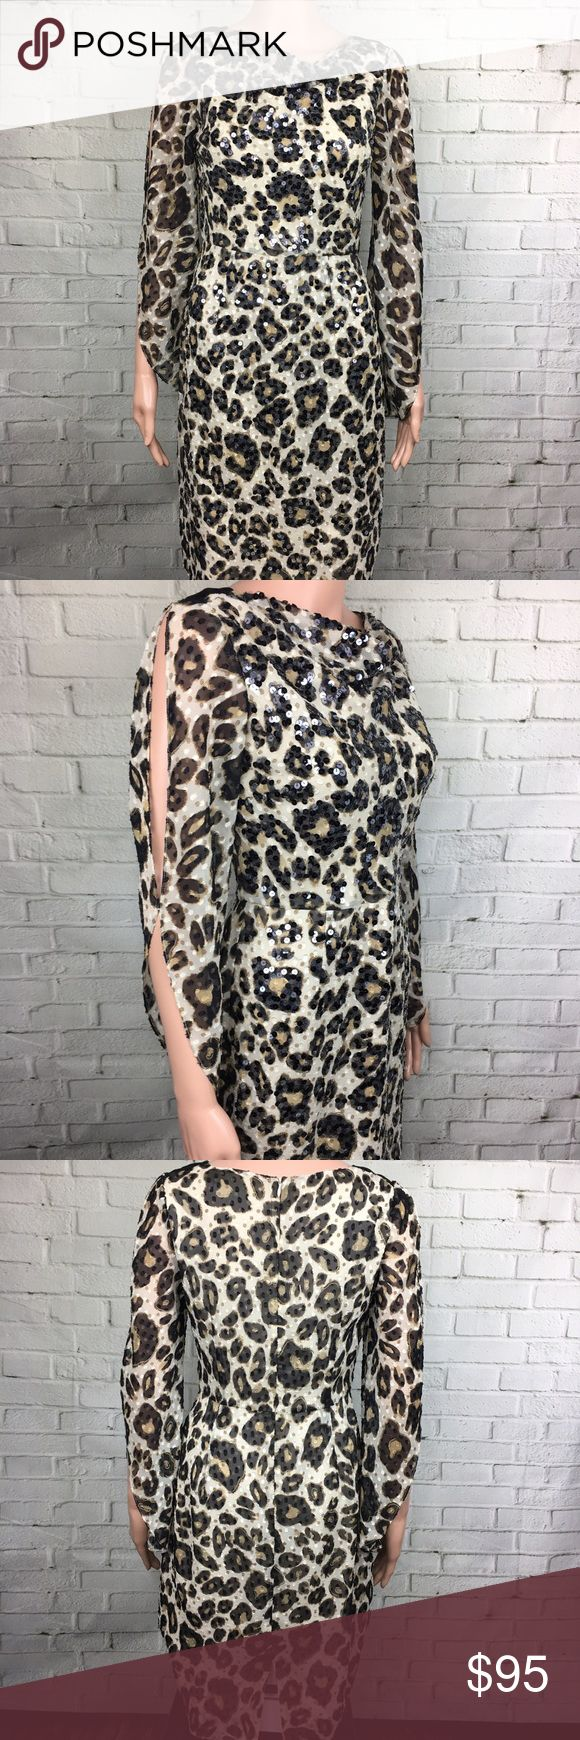 Sequin Animal Print Dress Stunning dress! Perfect for a party! Great condition ANTONIO MELANI Dresses